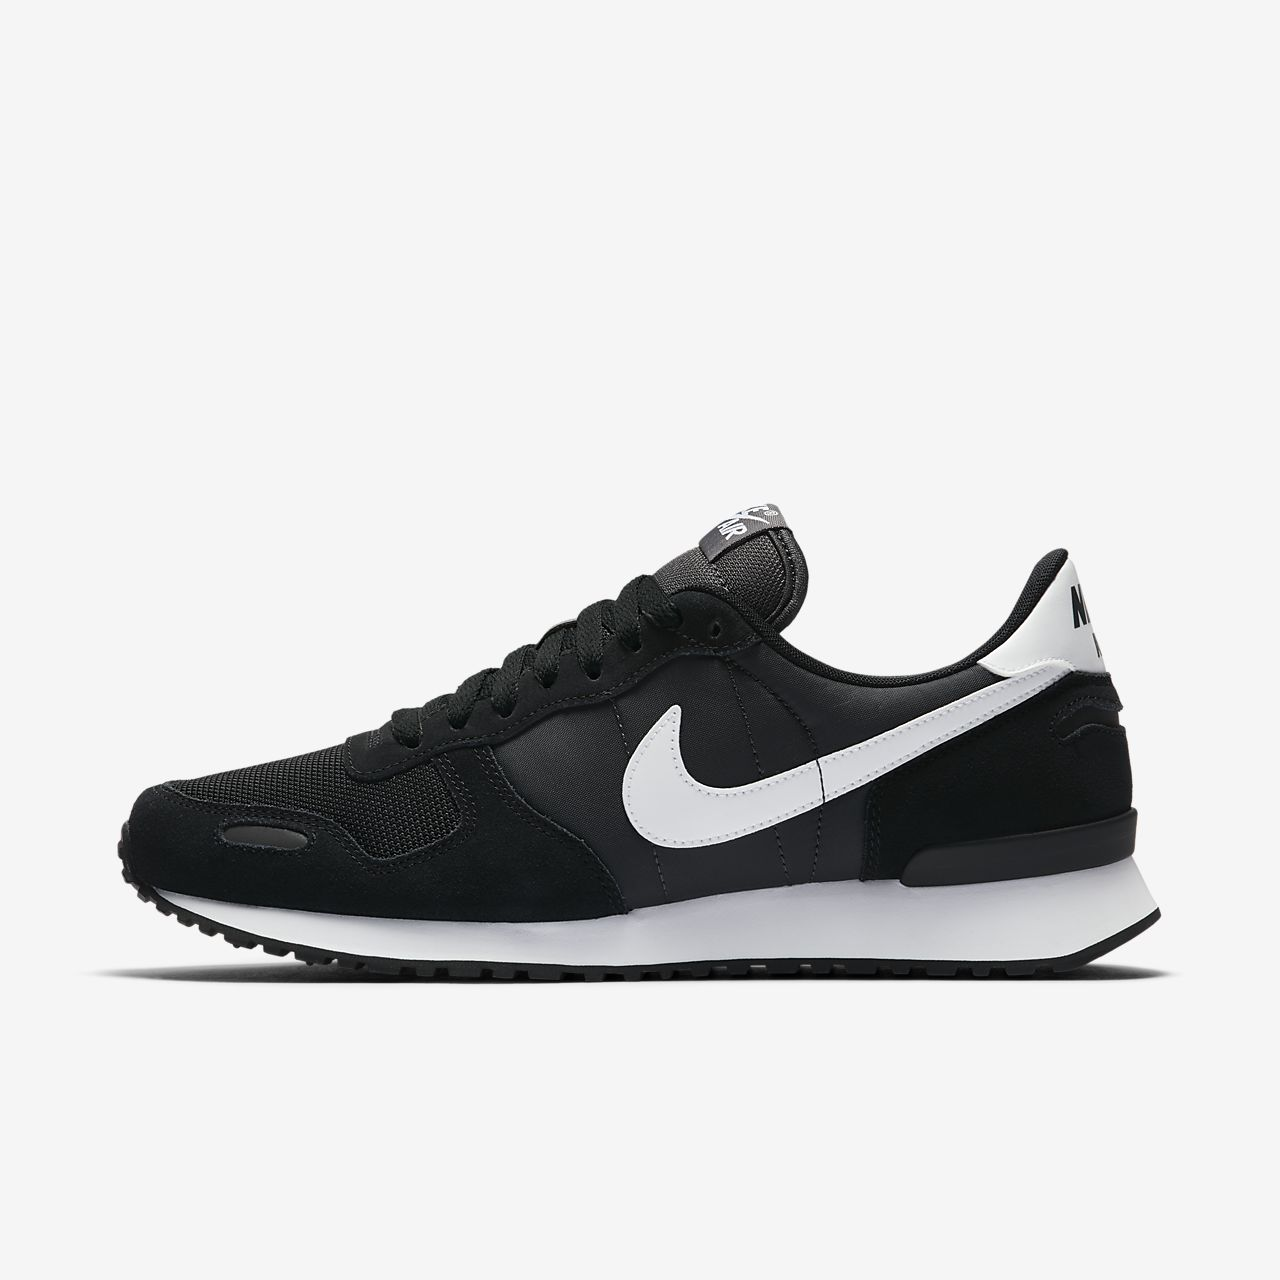 finest selection 7797a 63d51 Nike Air Vortex Men's Shoe. Nike.com GB